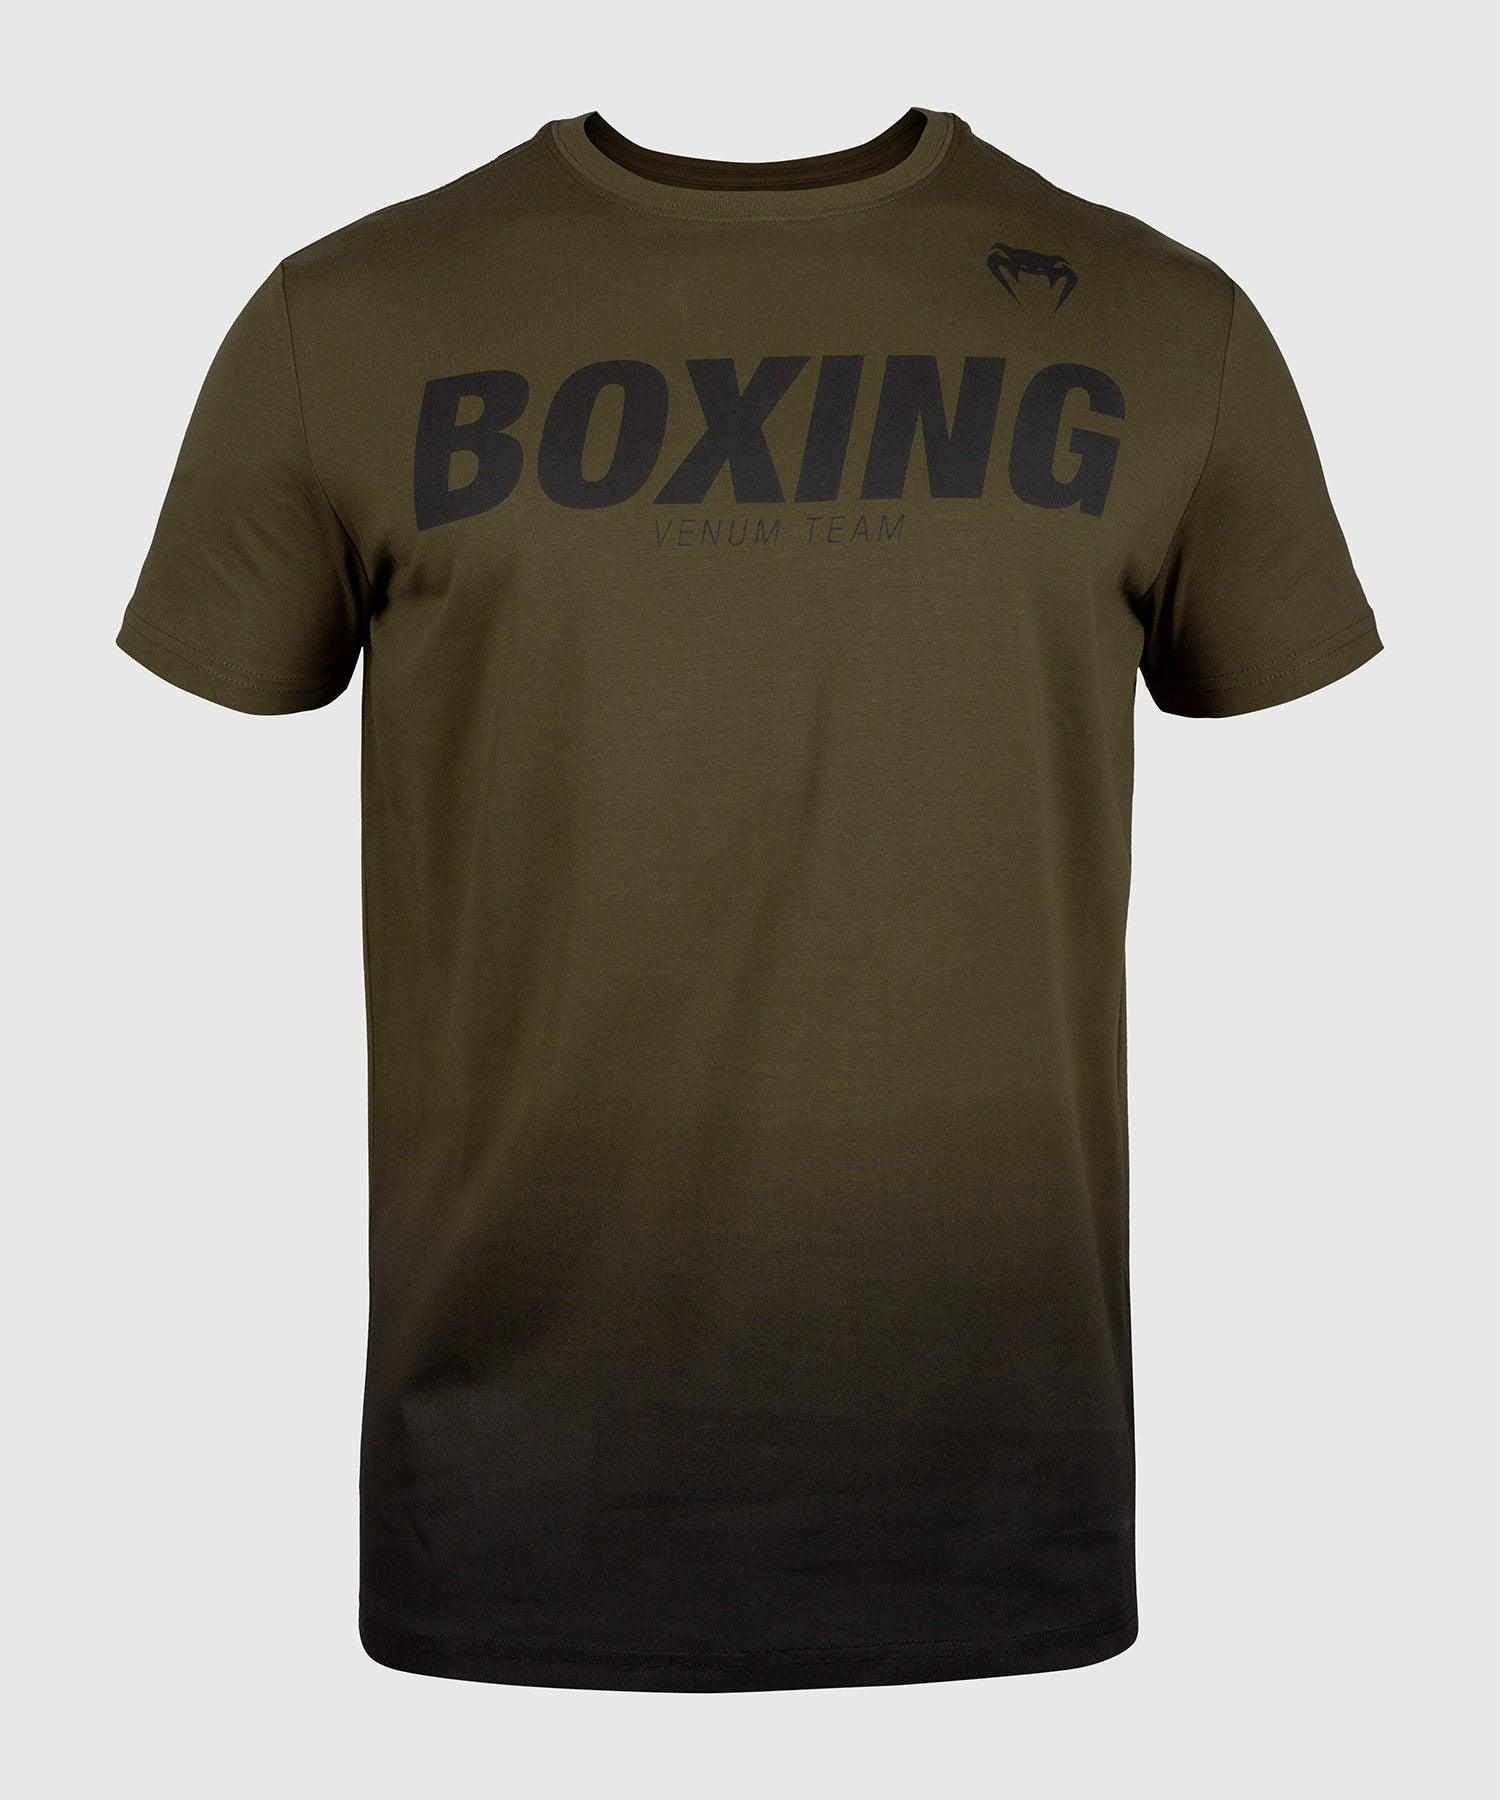 Venum Boxing VT T-shirt - Khaki/Black picture 1